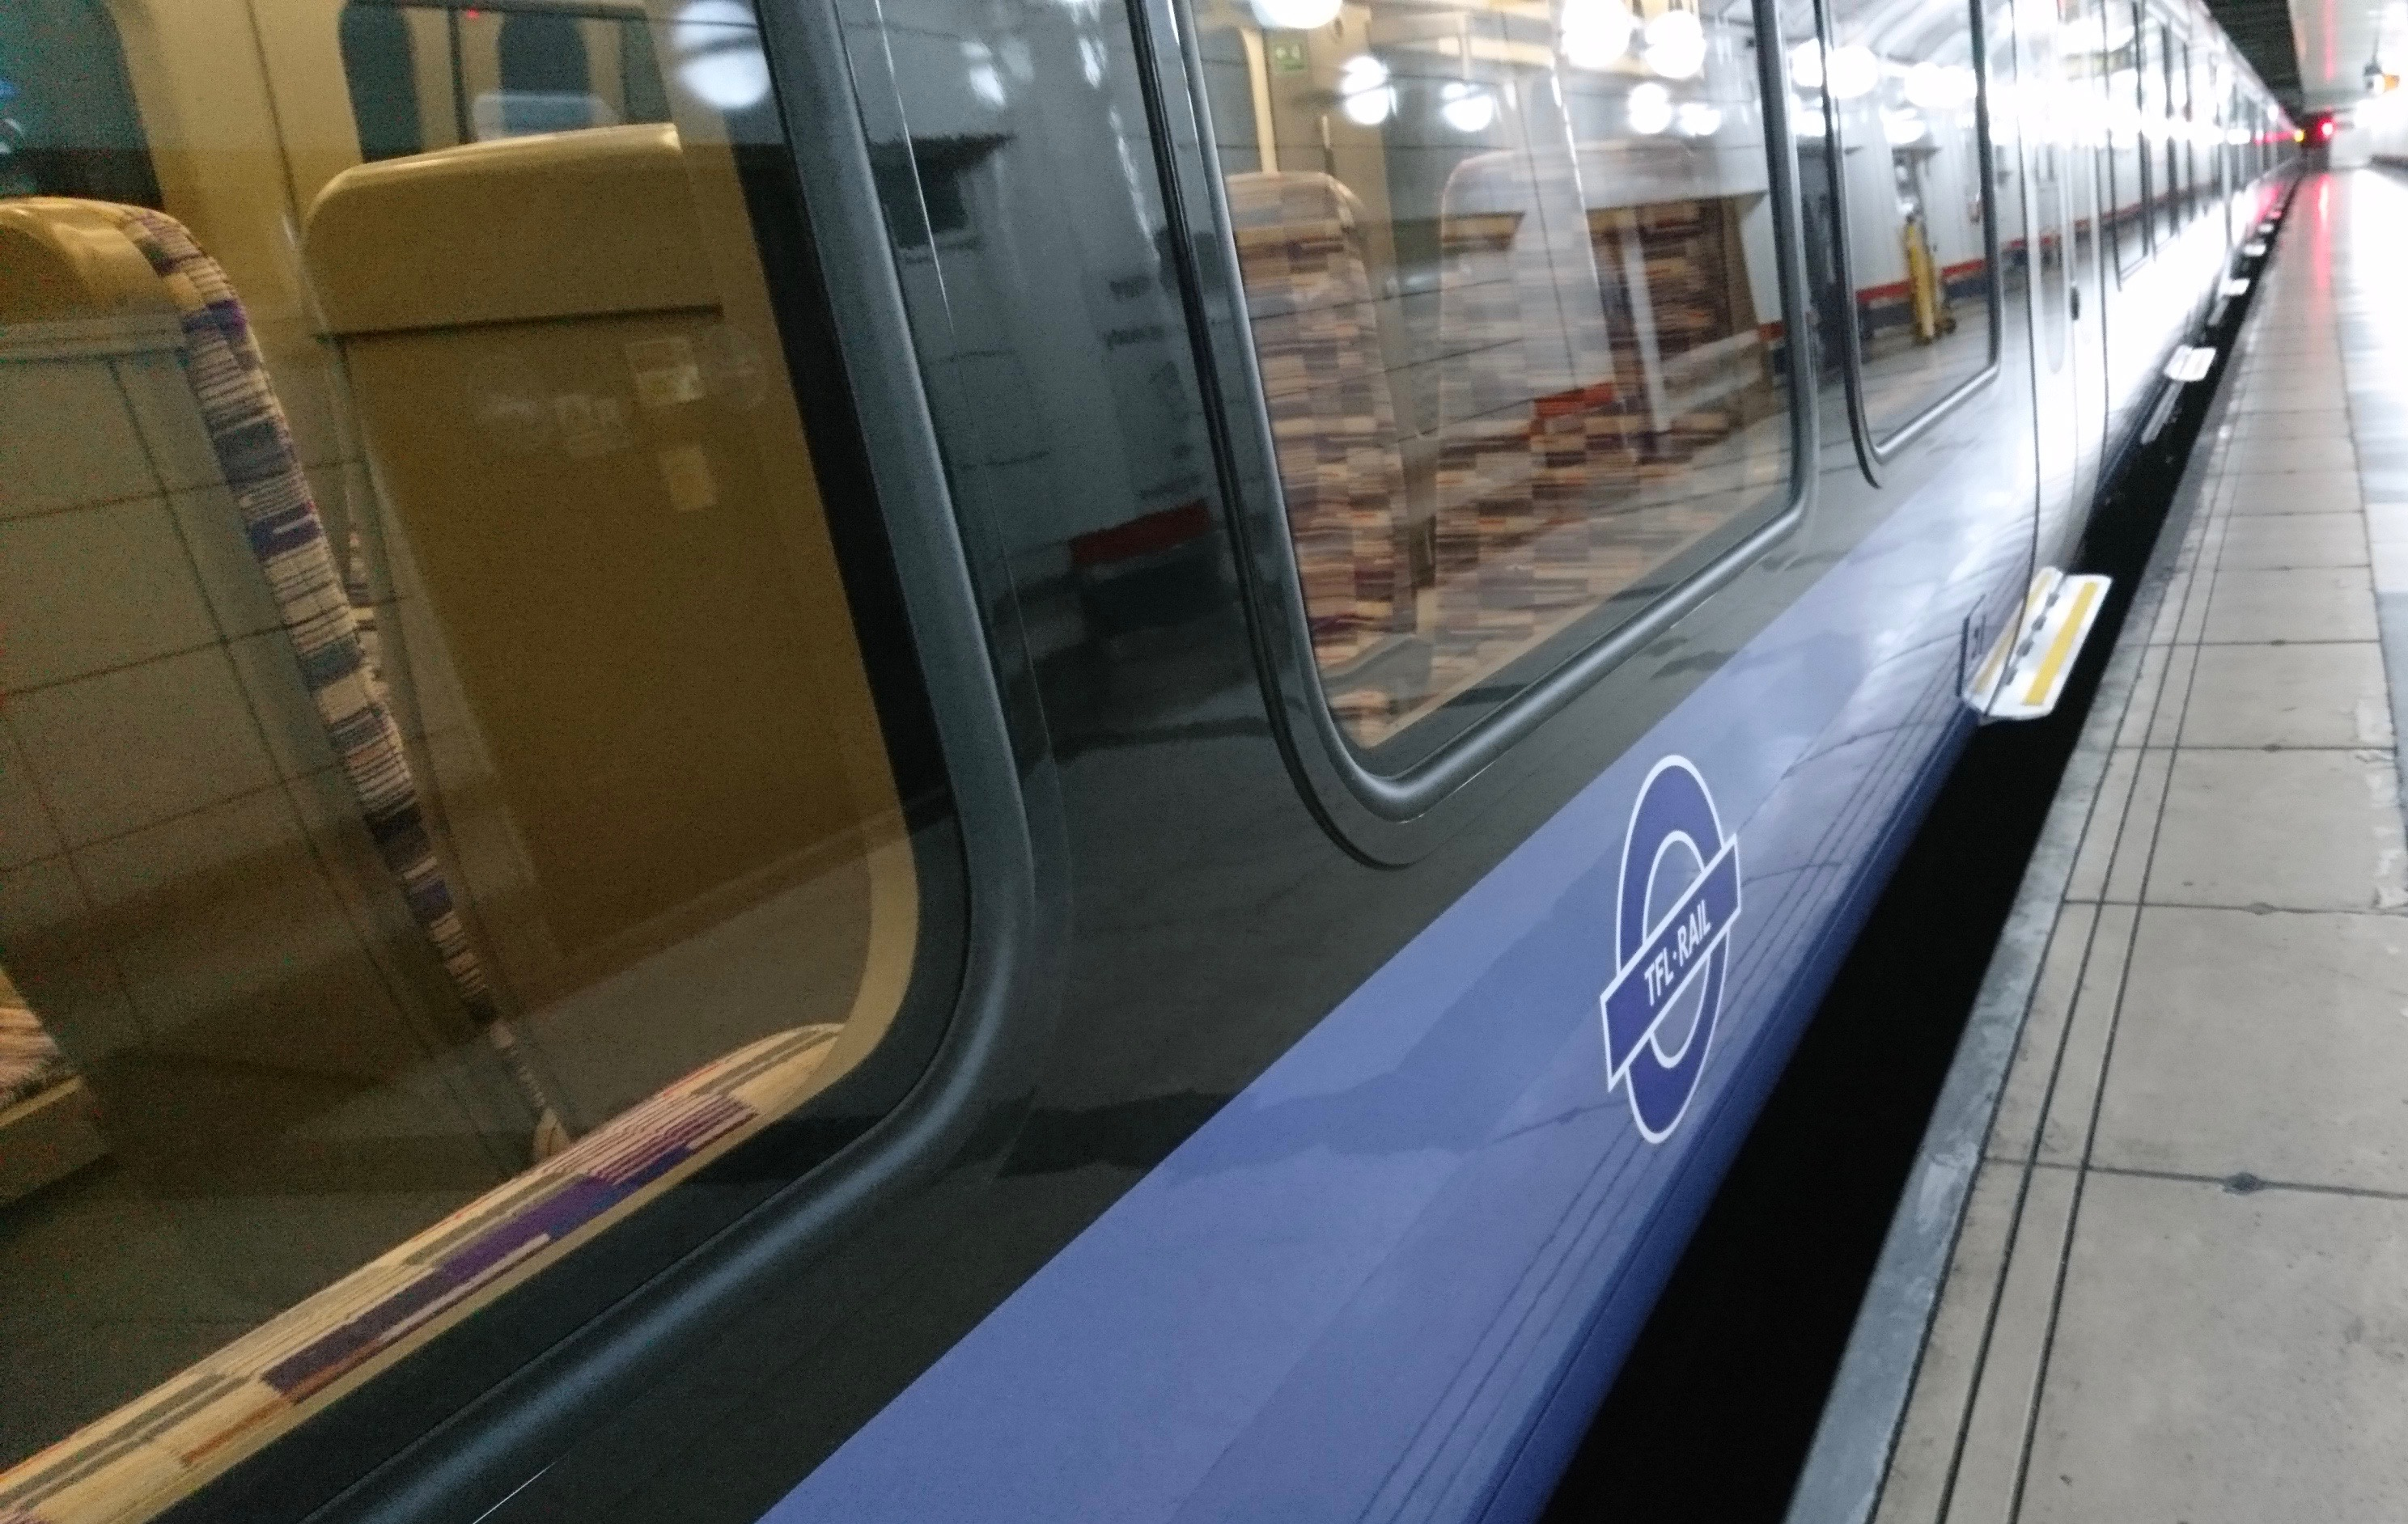 TfL Rail takes over Heathrow Connect from May – beginning of the end for Heathrow Express?